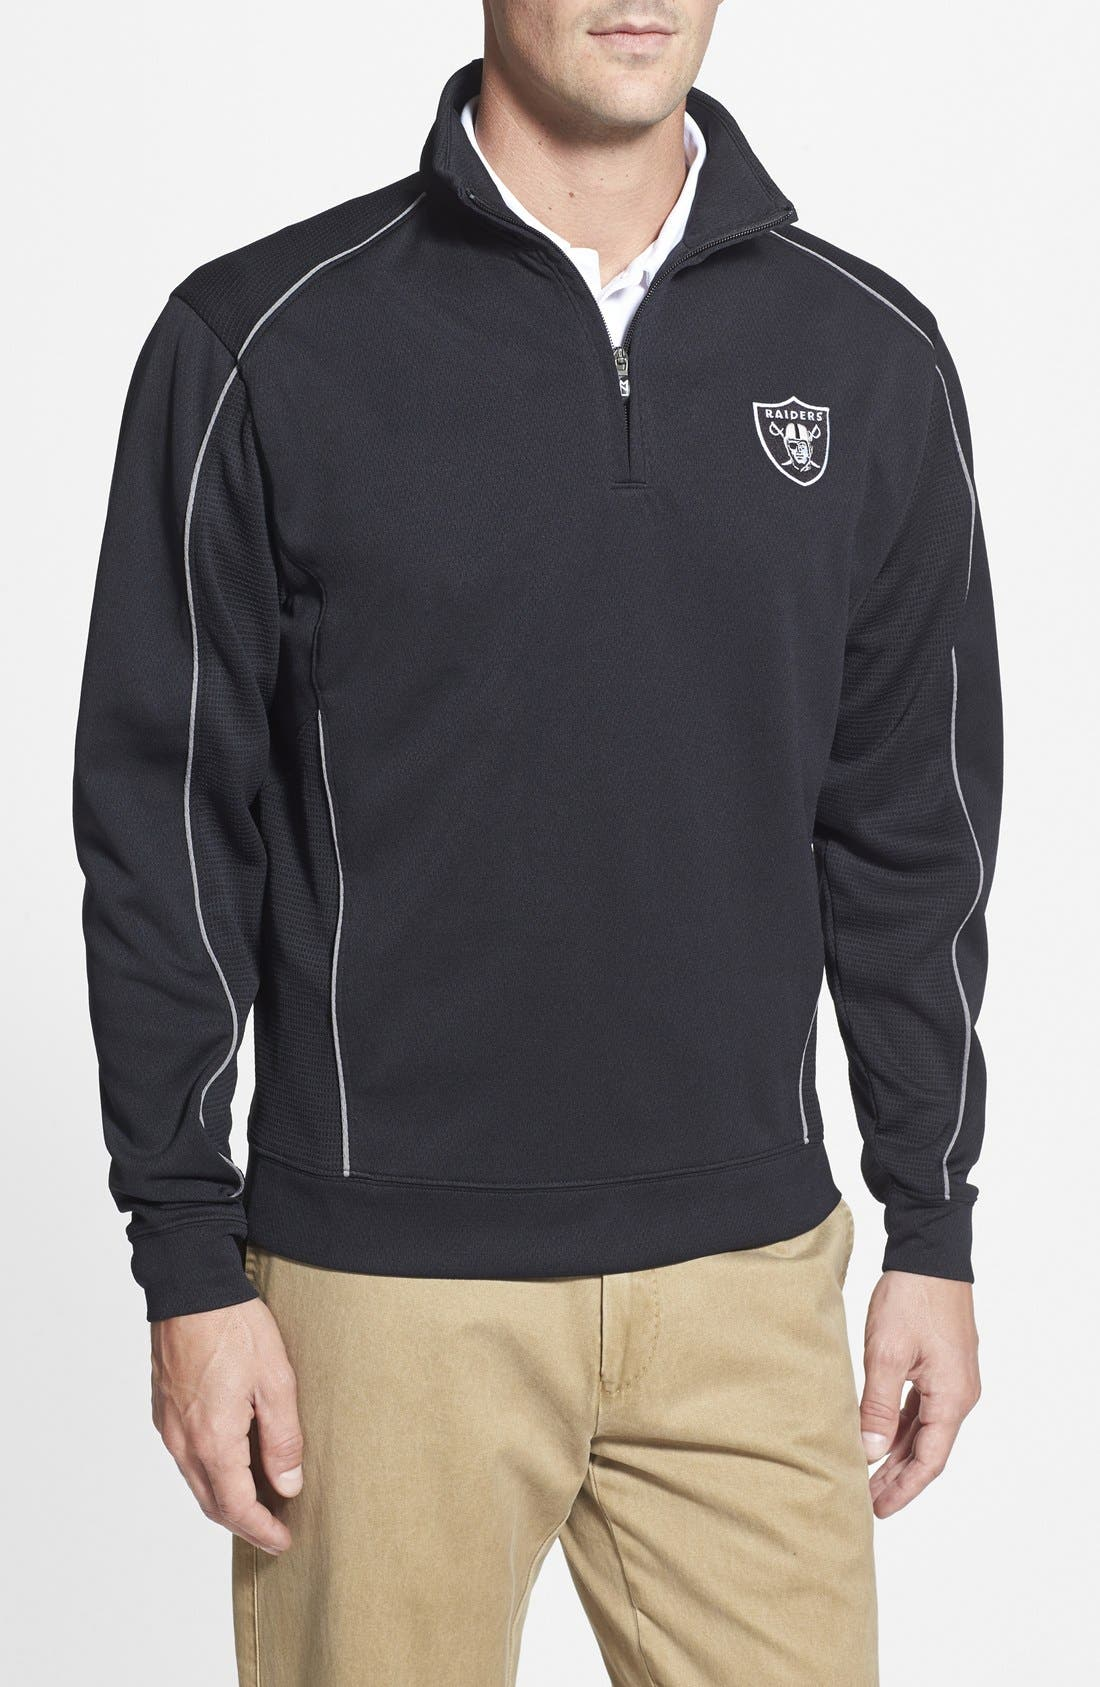 Cutter & Buck 'Oakland Raiders - Edge' DryTec Moisture Wicking Half Zip Pullover (Big & Tall)